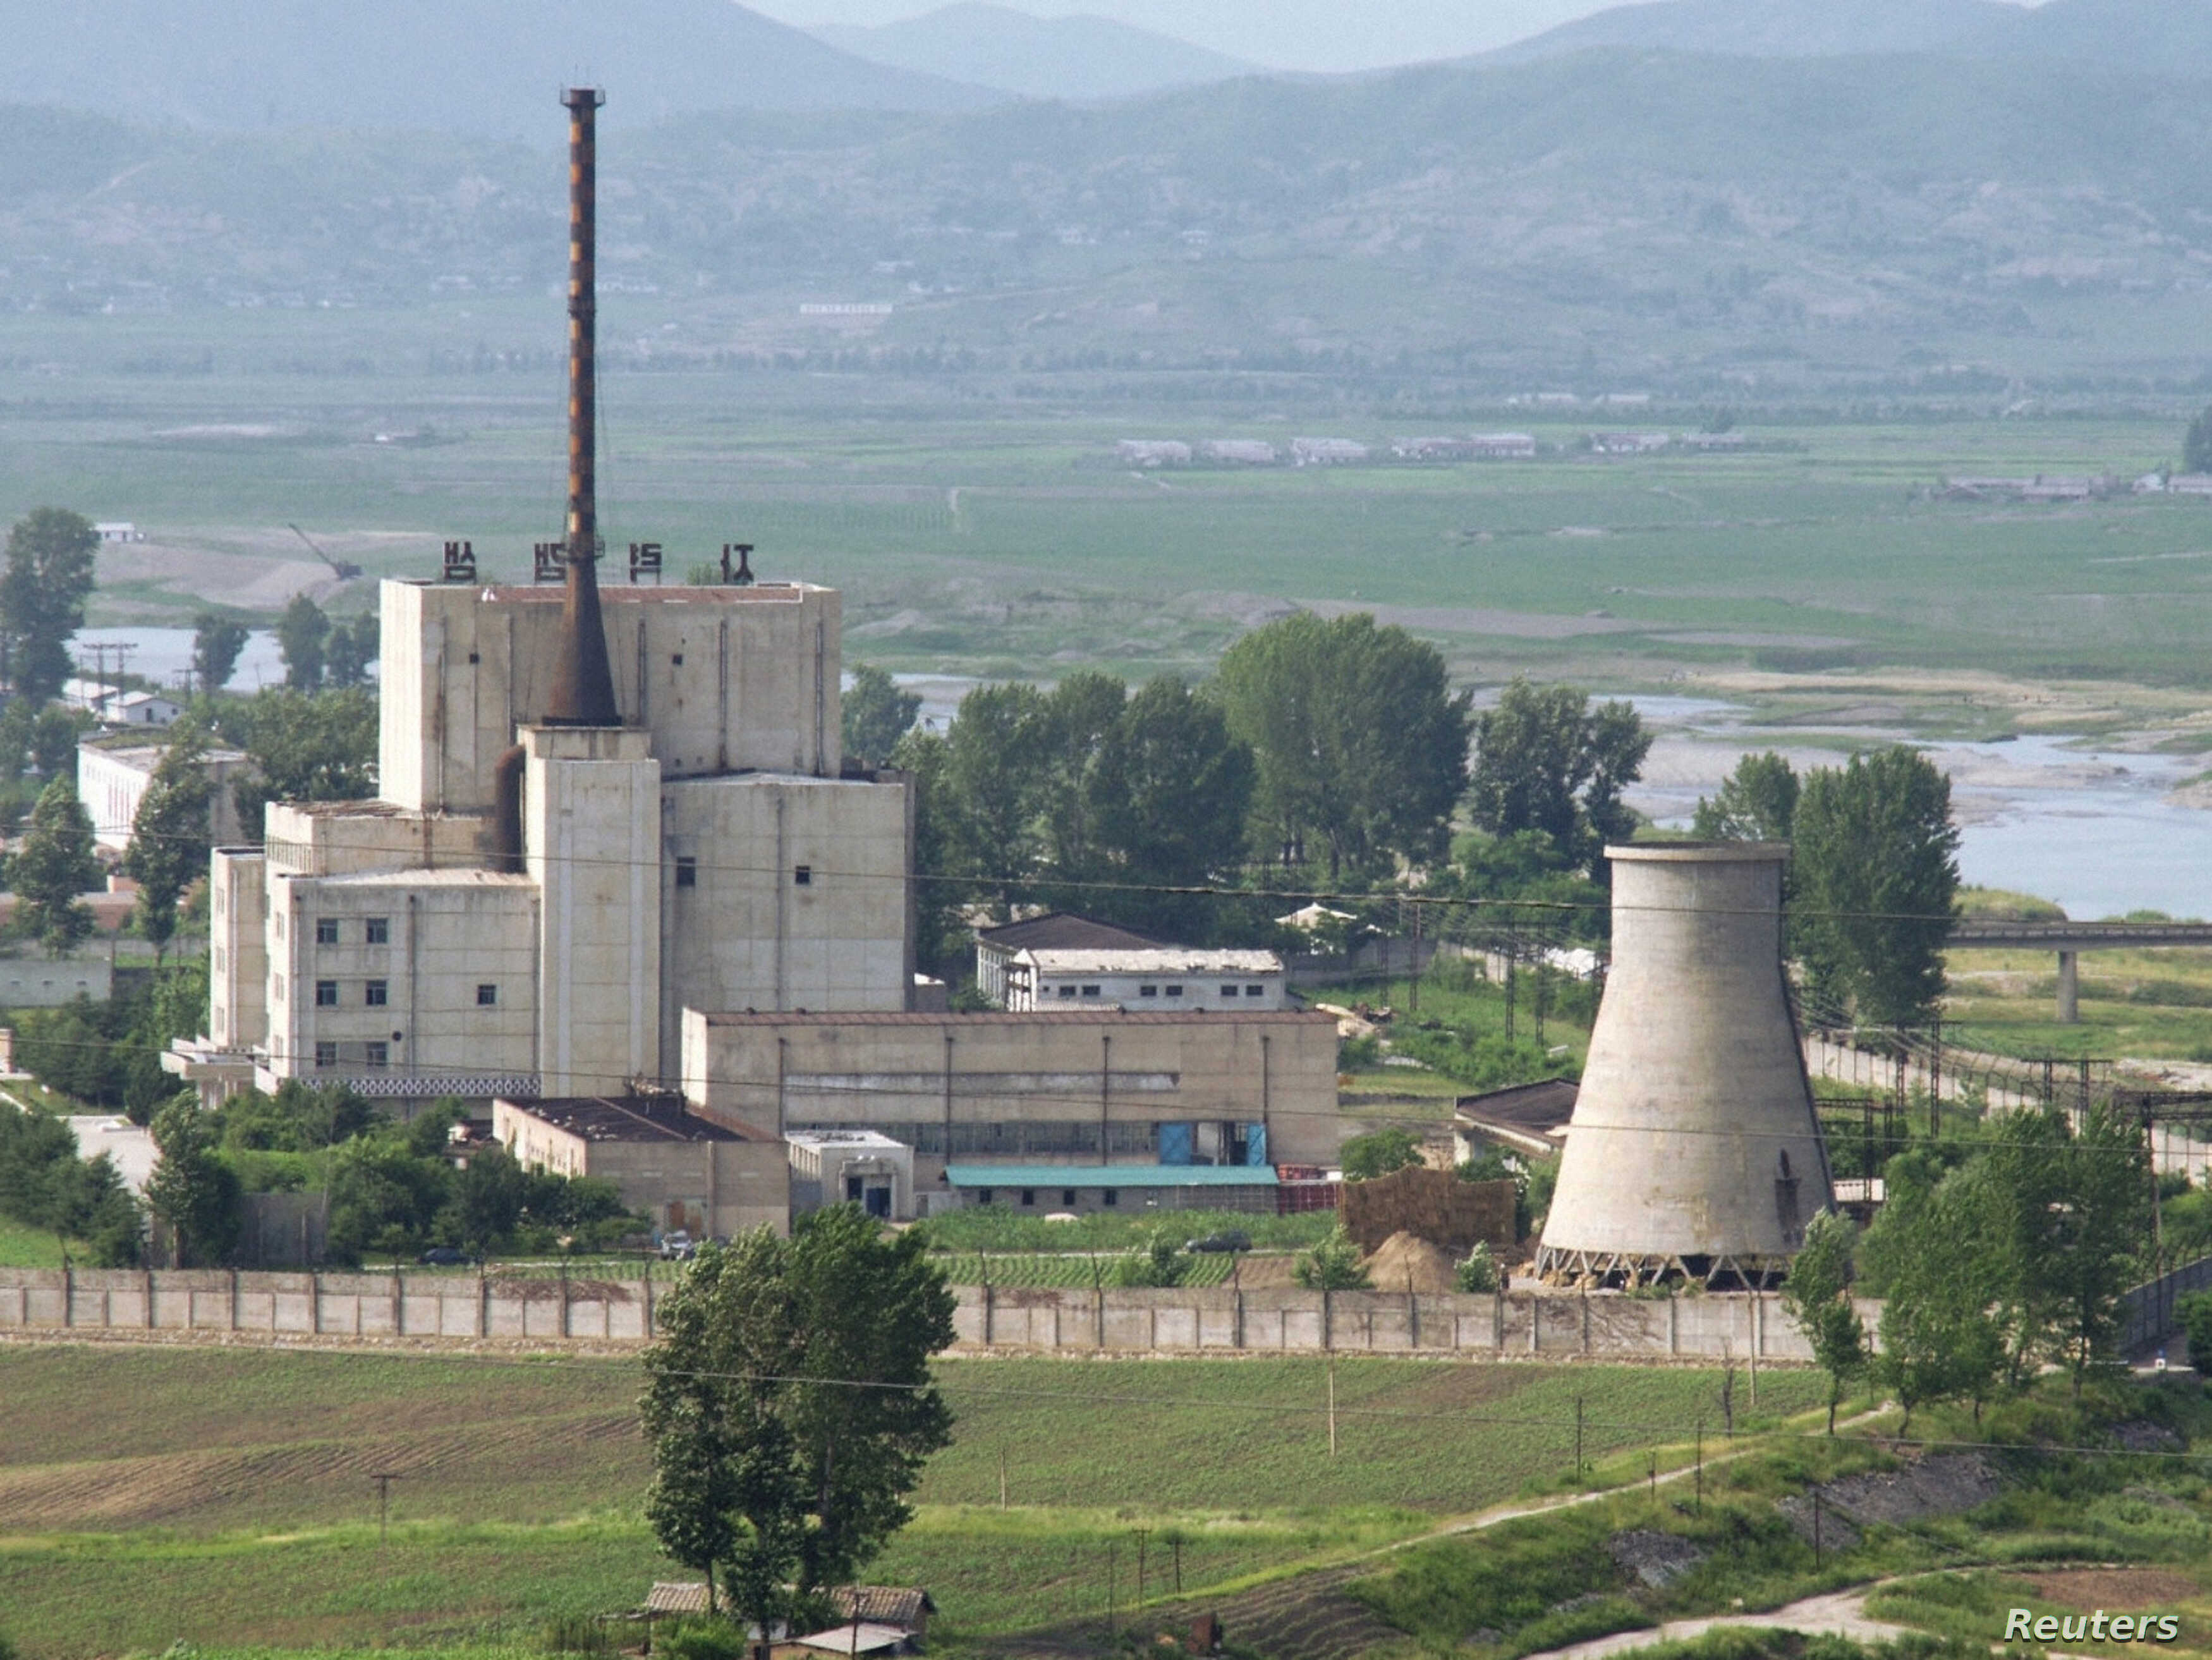 A North Korean nuclear plant is seen before demolishing a cooling tower (R) in Yongbyon, in this photo taken June 27, 2008 and released by Kyodo. North Korea is to restart the mothballed Yongbyon nuclear reactor that has been closed since 2007 in a m...